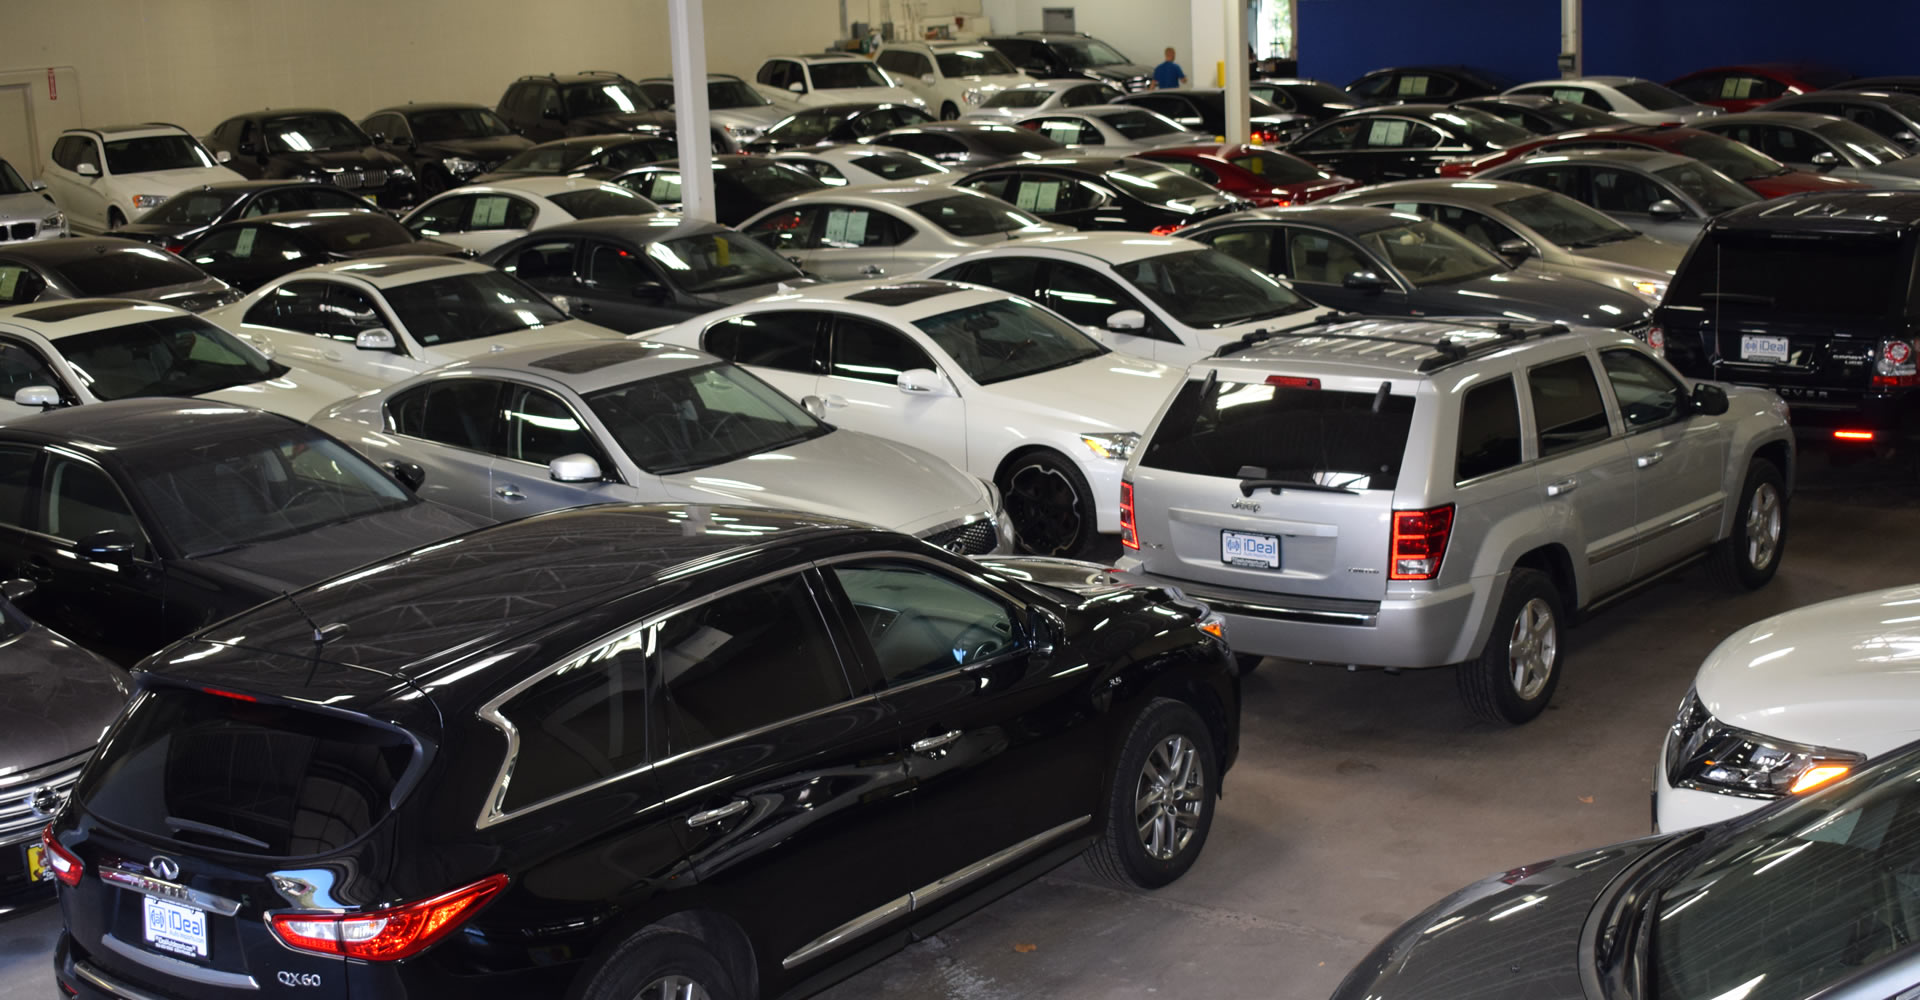 Used Car Dealerships In Mn Luxury Ideal Auto Imports Llc Eden Prairie Mn